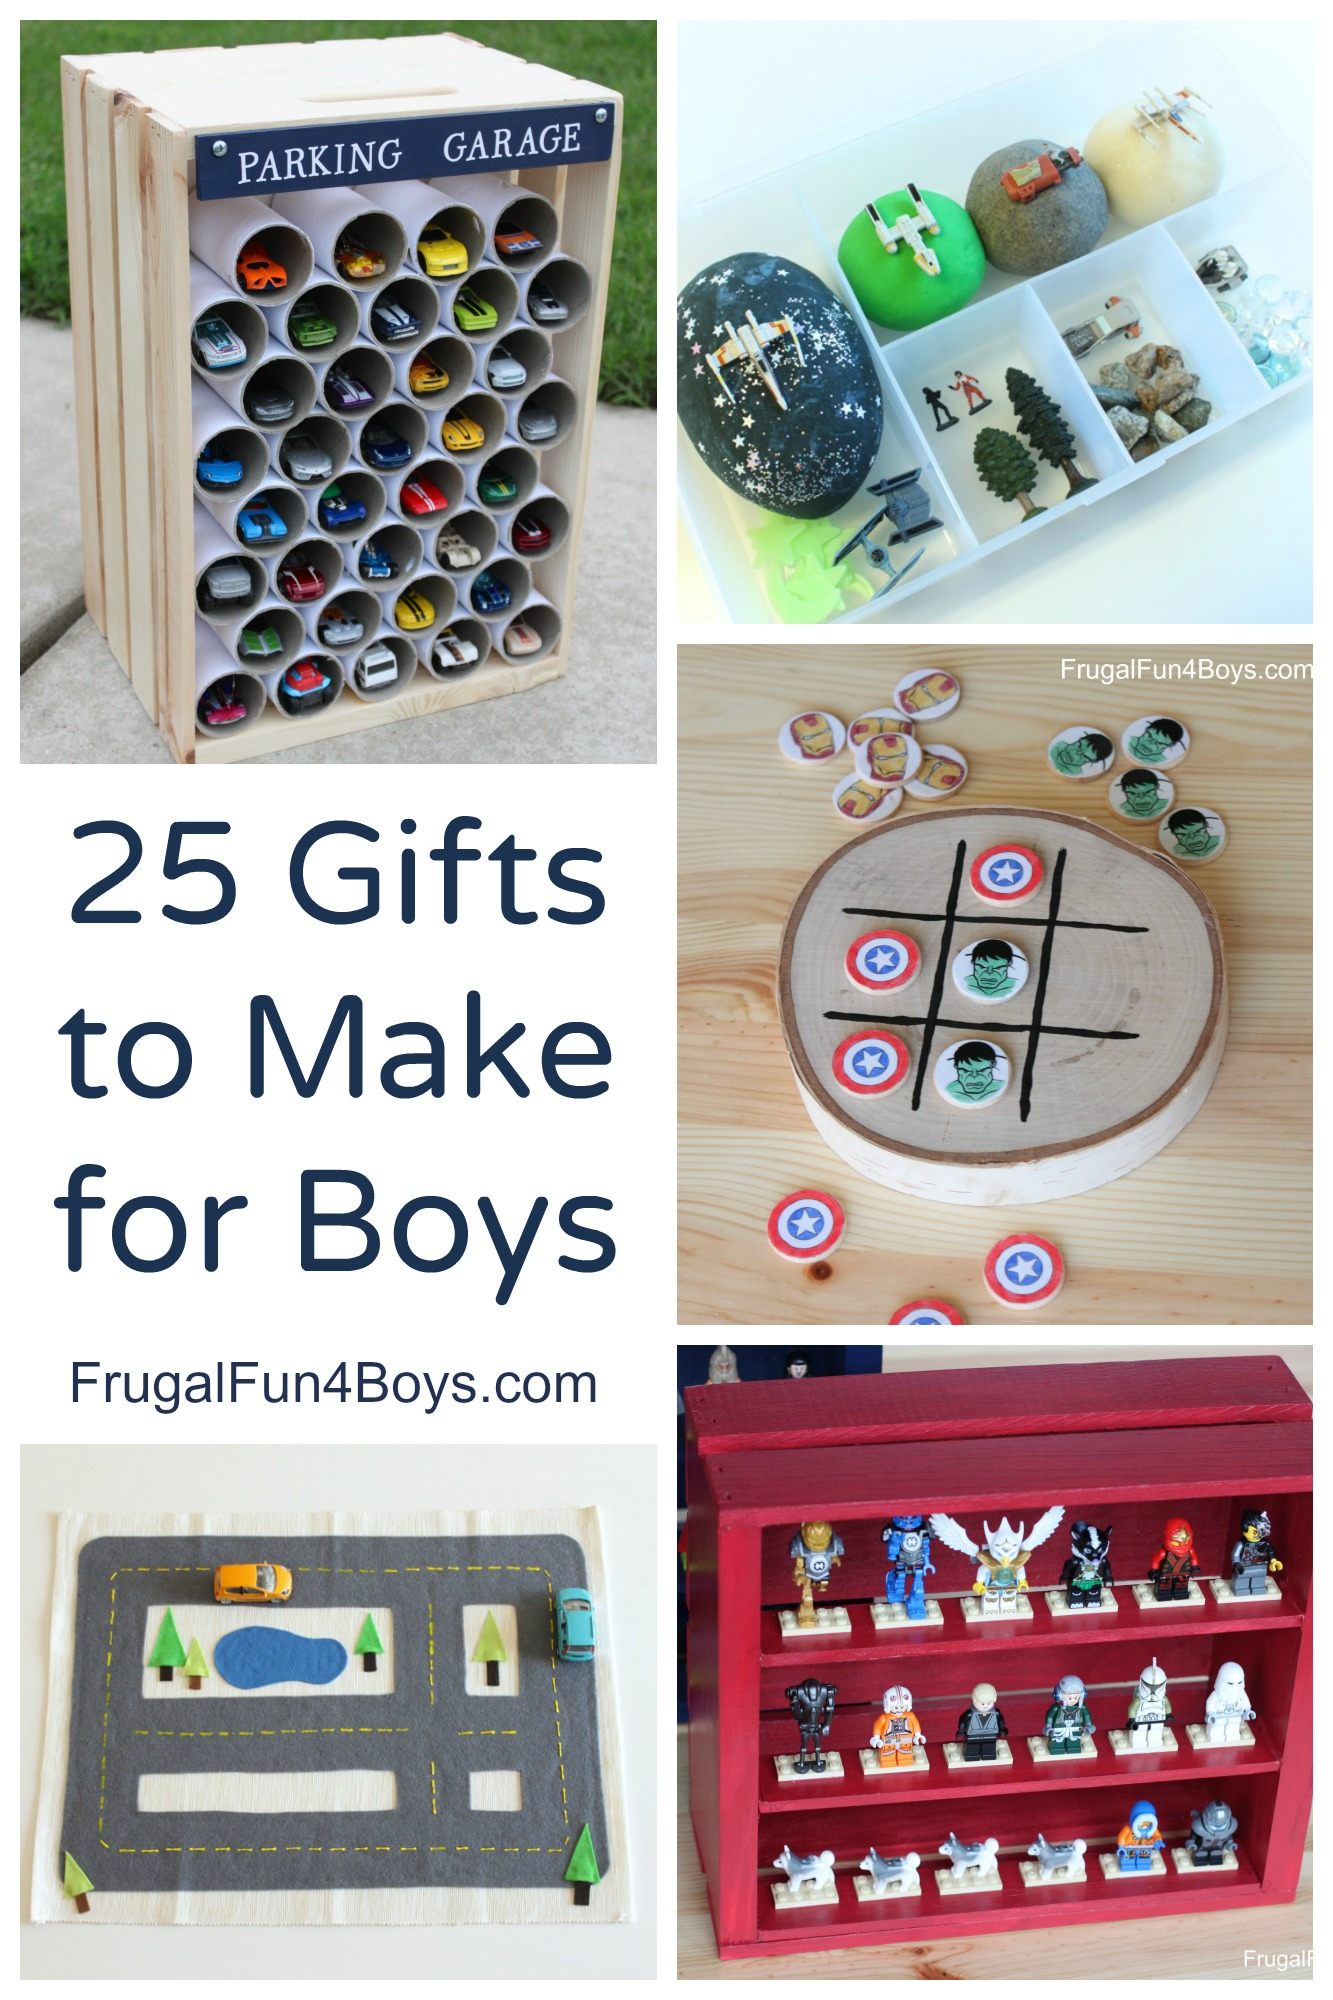 25 Gifts to Make for Boys - Homemade Toys that Boys will Go for!